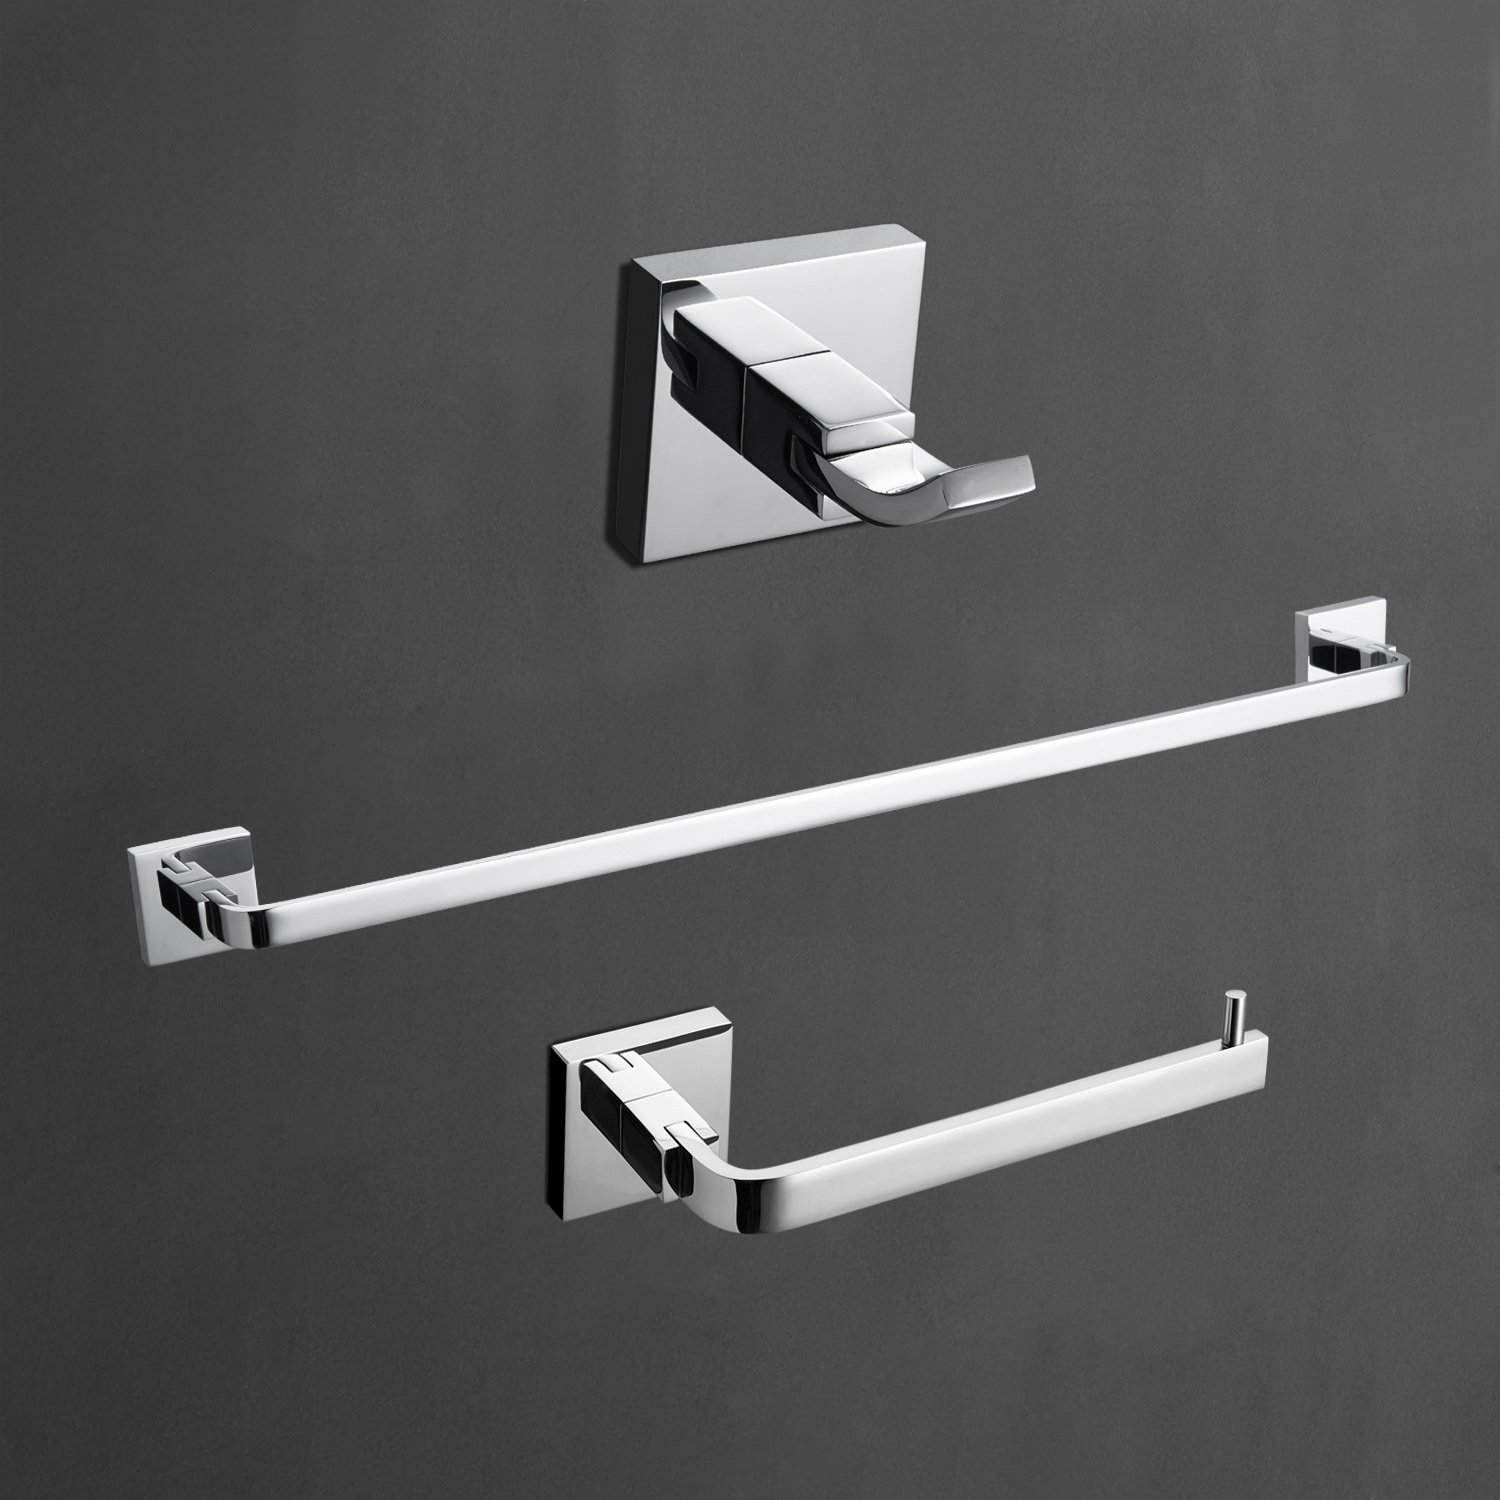 StarFashion 3-peice Bathroom Accessories Set Towel Bar Toilet Paper Holder Robe Hooks Bathroom Shelf Solid Brass Wall Mounted,Chrome Finish Contemporary Bath Shower Set Kitchen Towel Racks by StarFashion